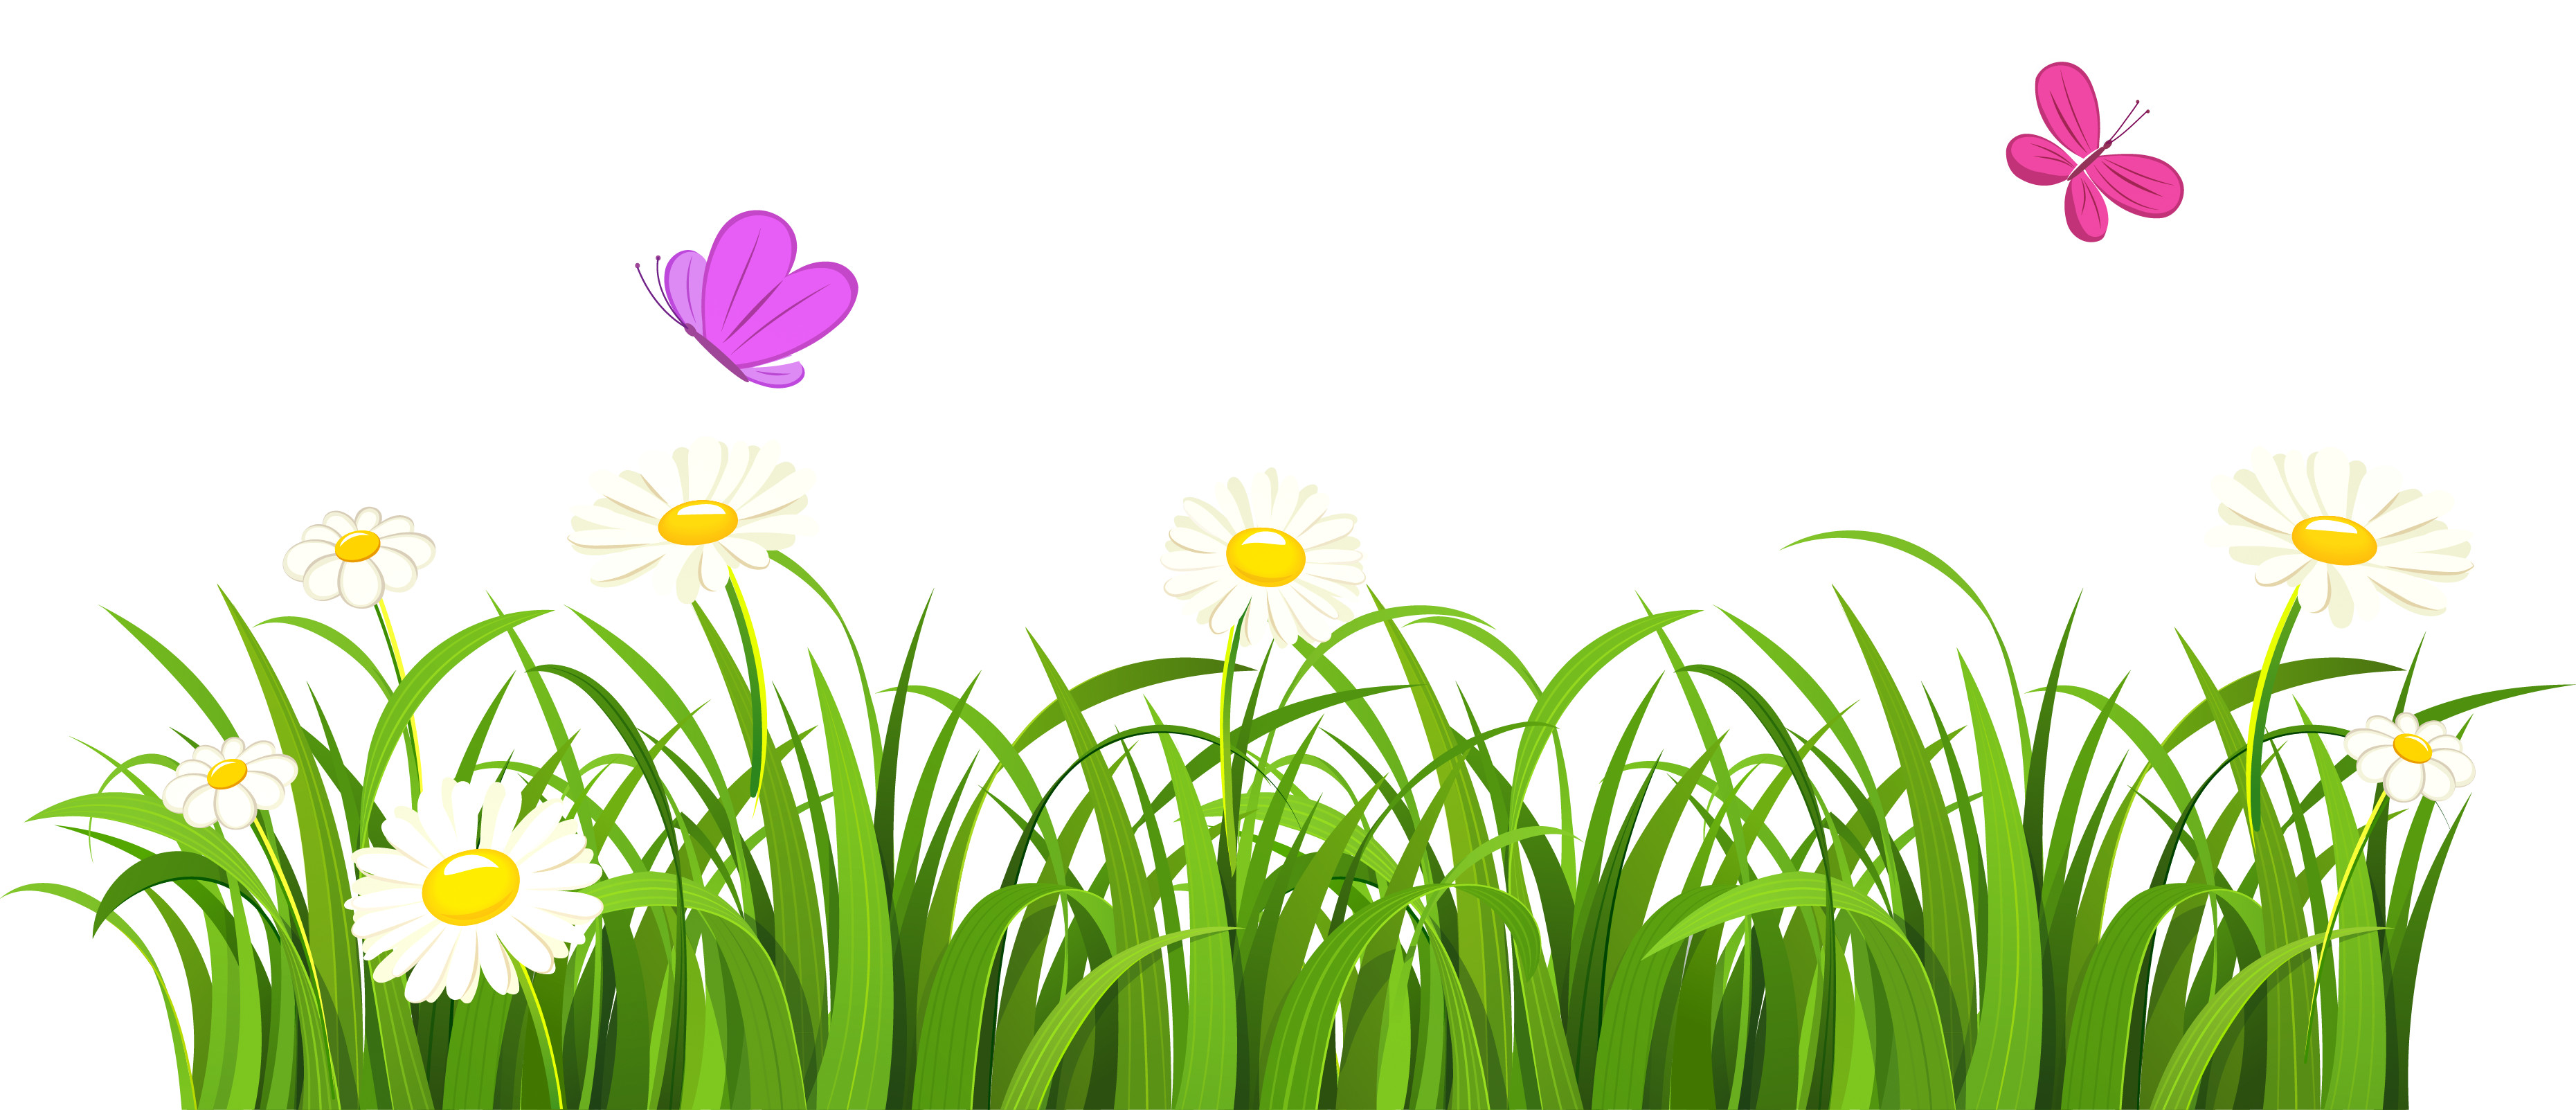 cute spring backgrounds  43 images Summer Clip Art June Birthday Clip Art